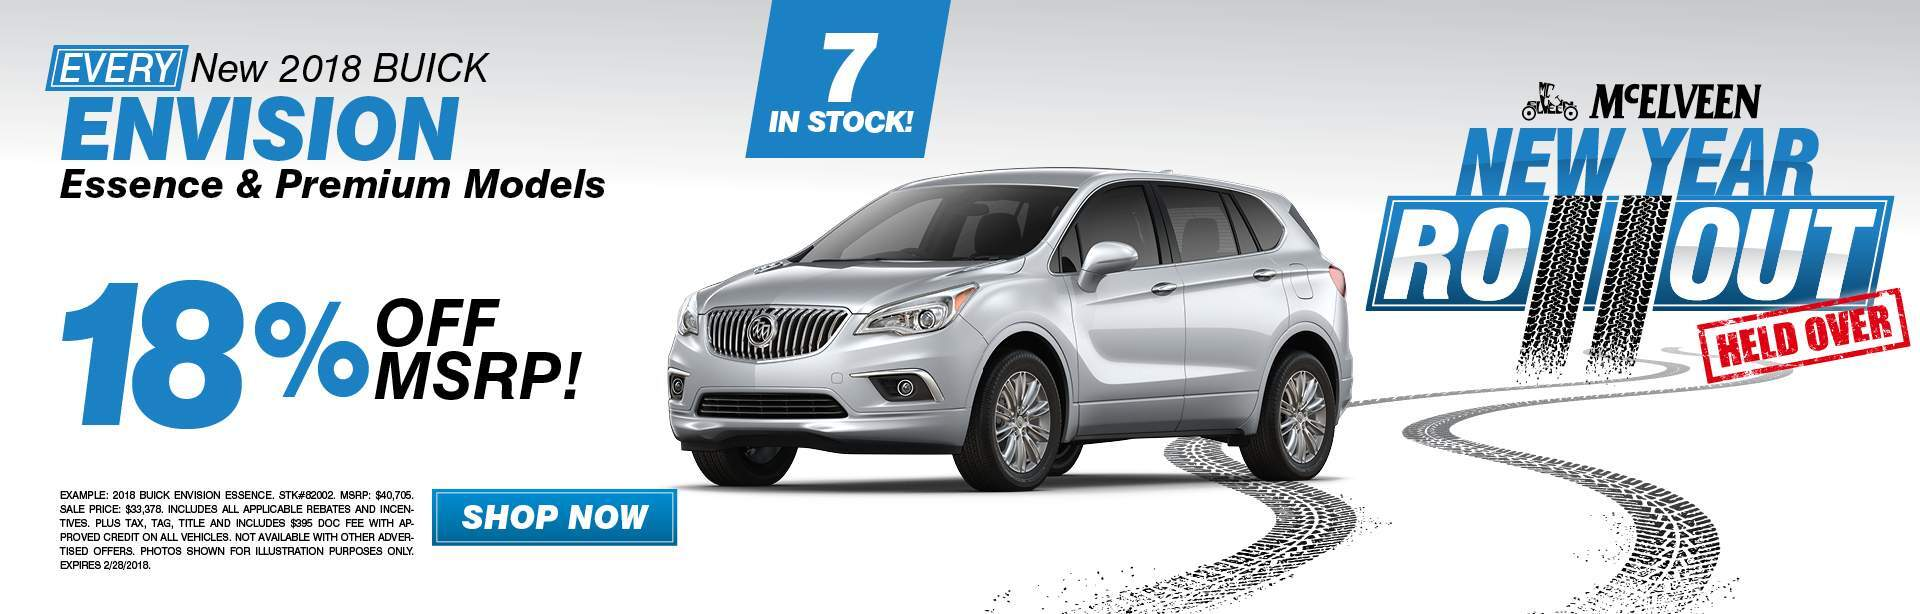 New 2018 Buick Envision